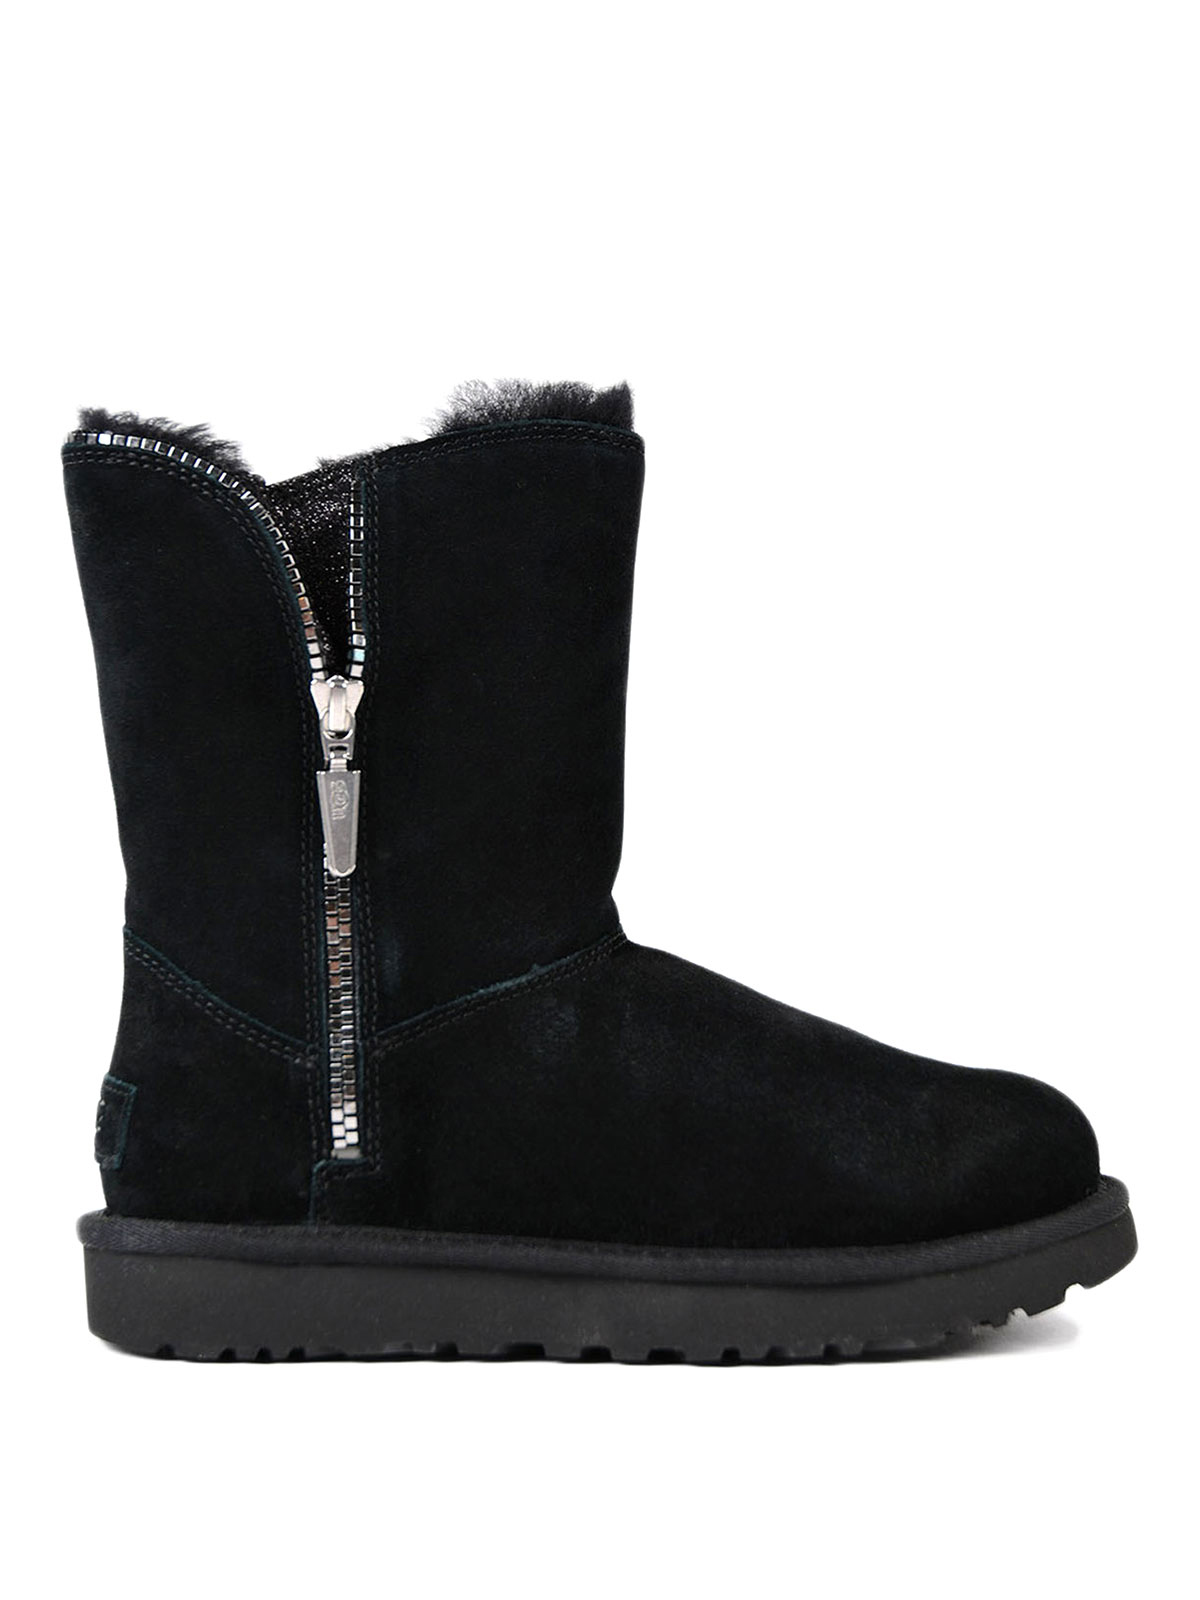 See the latest Steve Madden boots, shoes, handbags and accessories at Steve bigframenetwork.ga Save with Free Shipping & free in-store returns.